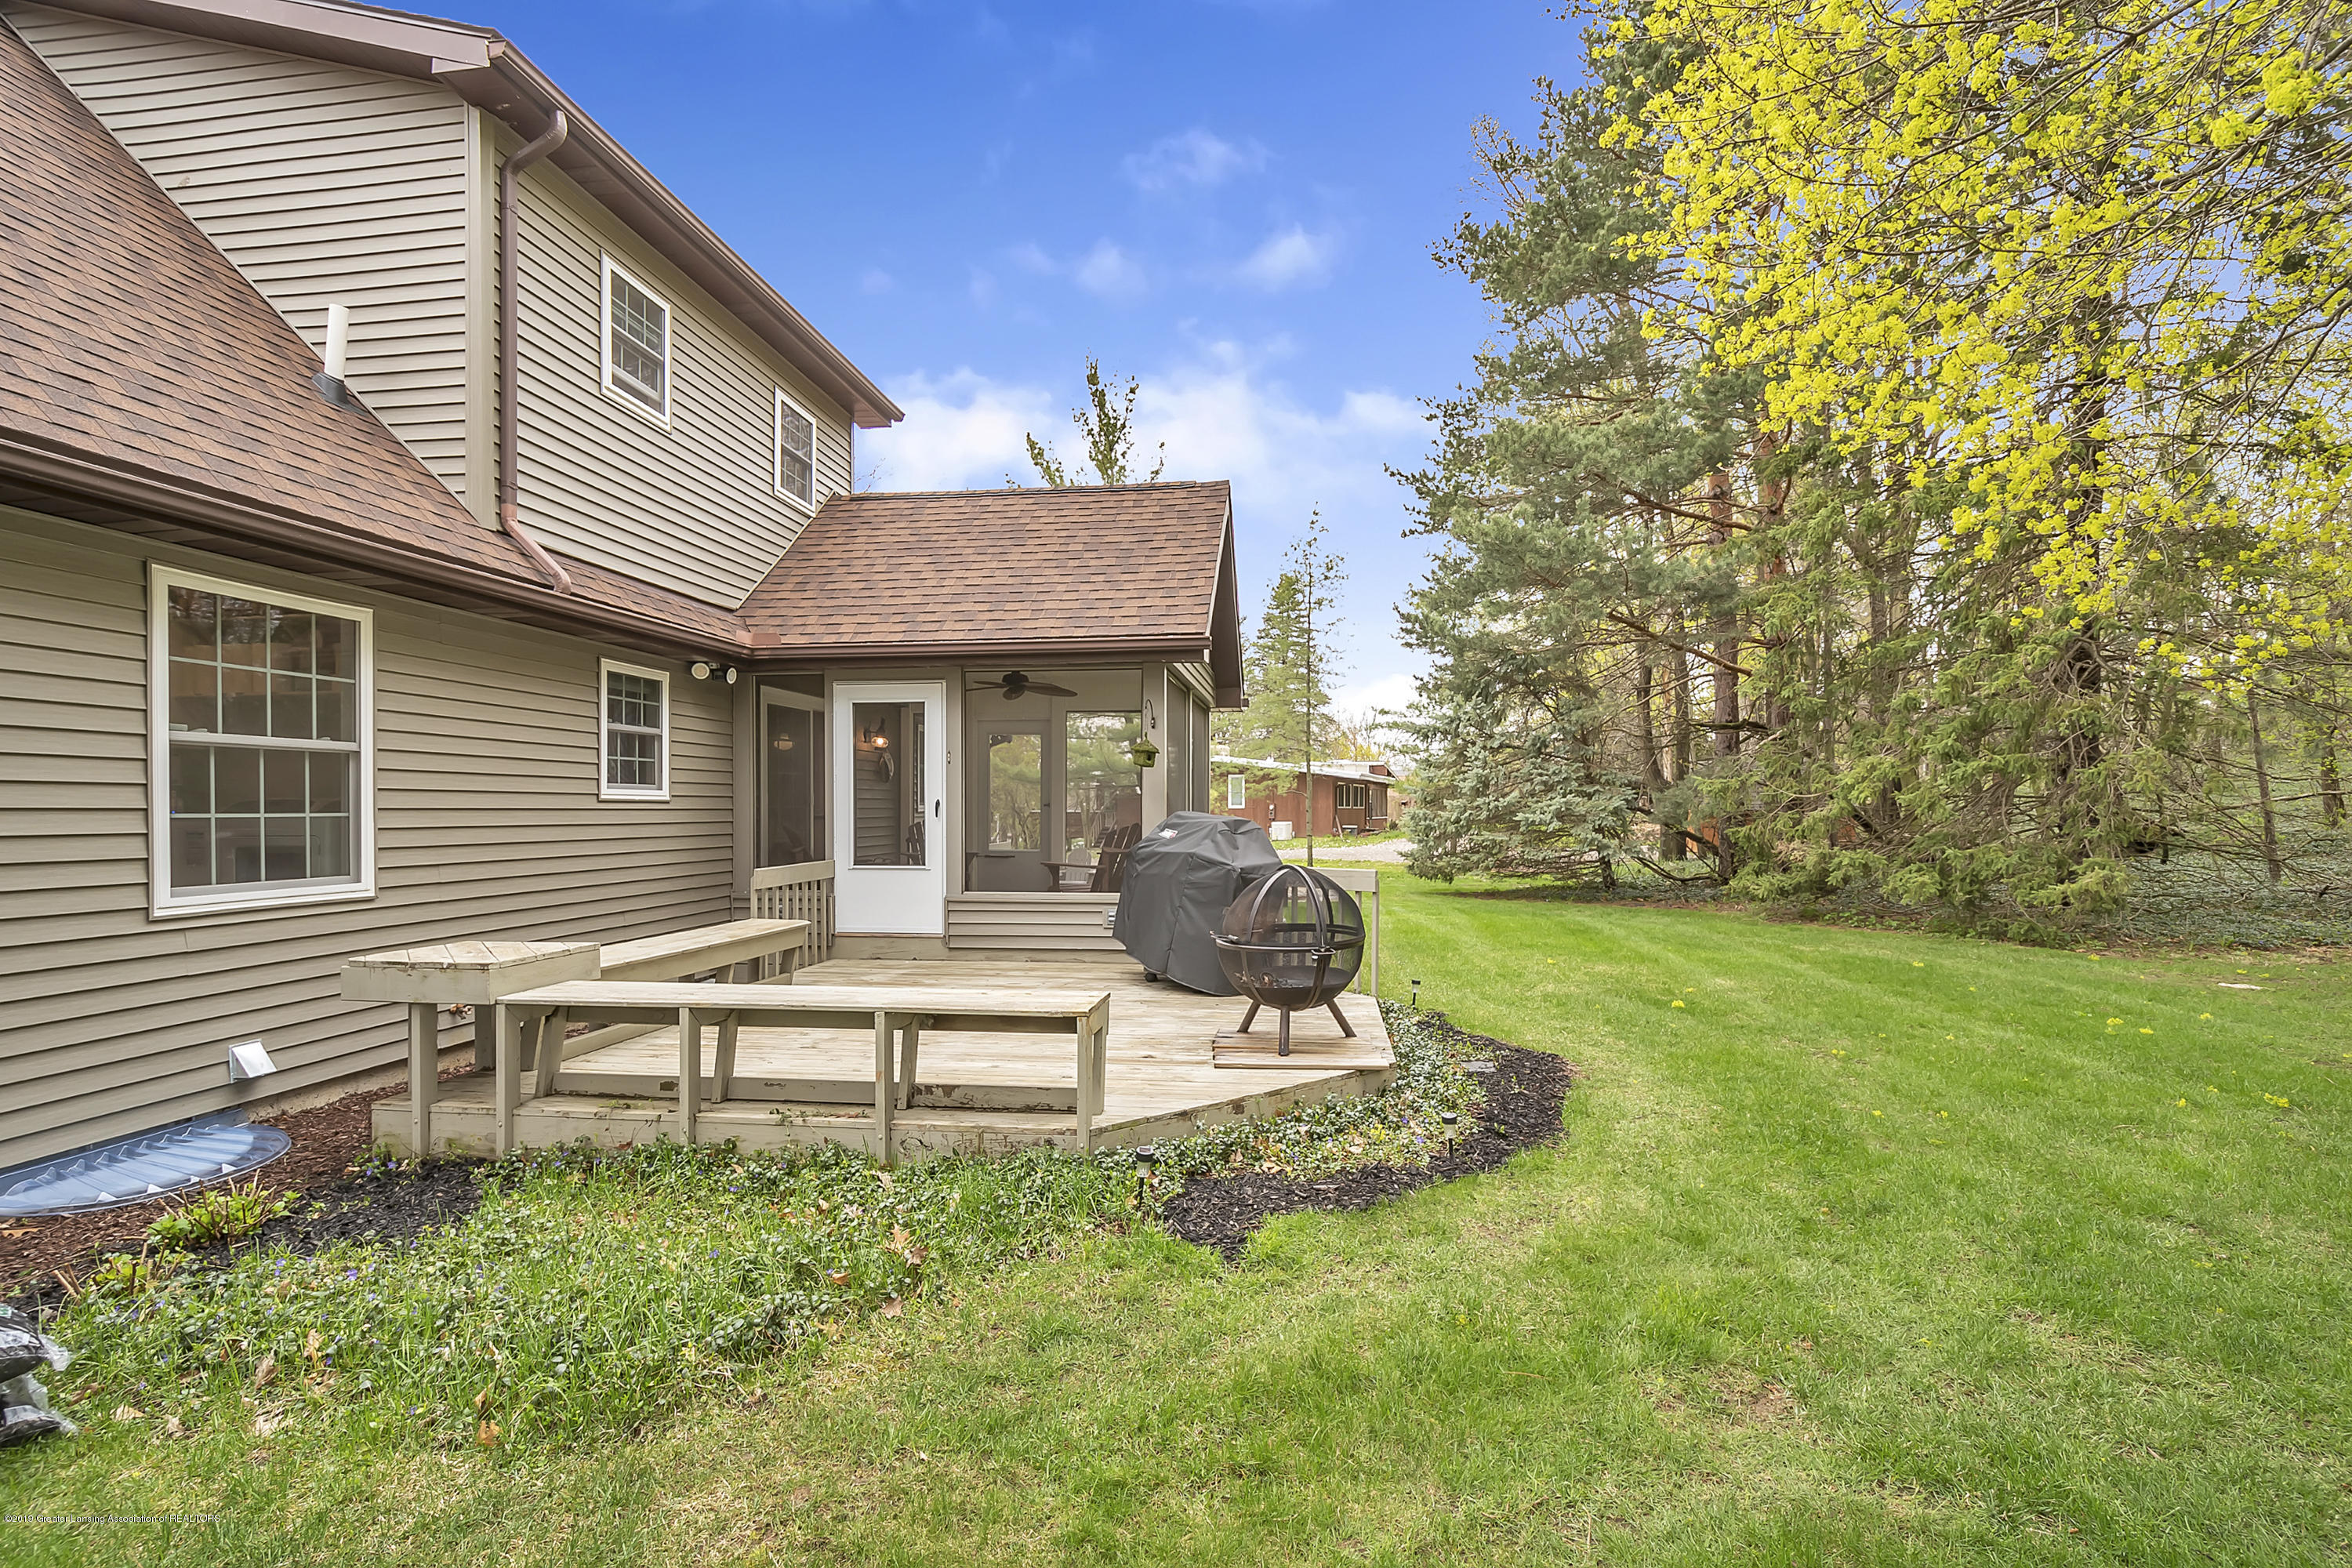 5075 Lake Dr - 5075-Lake-Dr-Owosso-windowstill-37 - 36